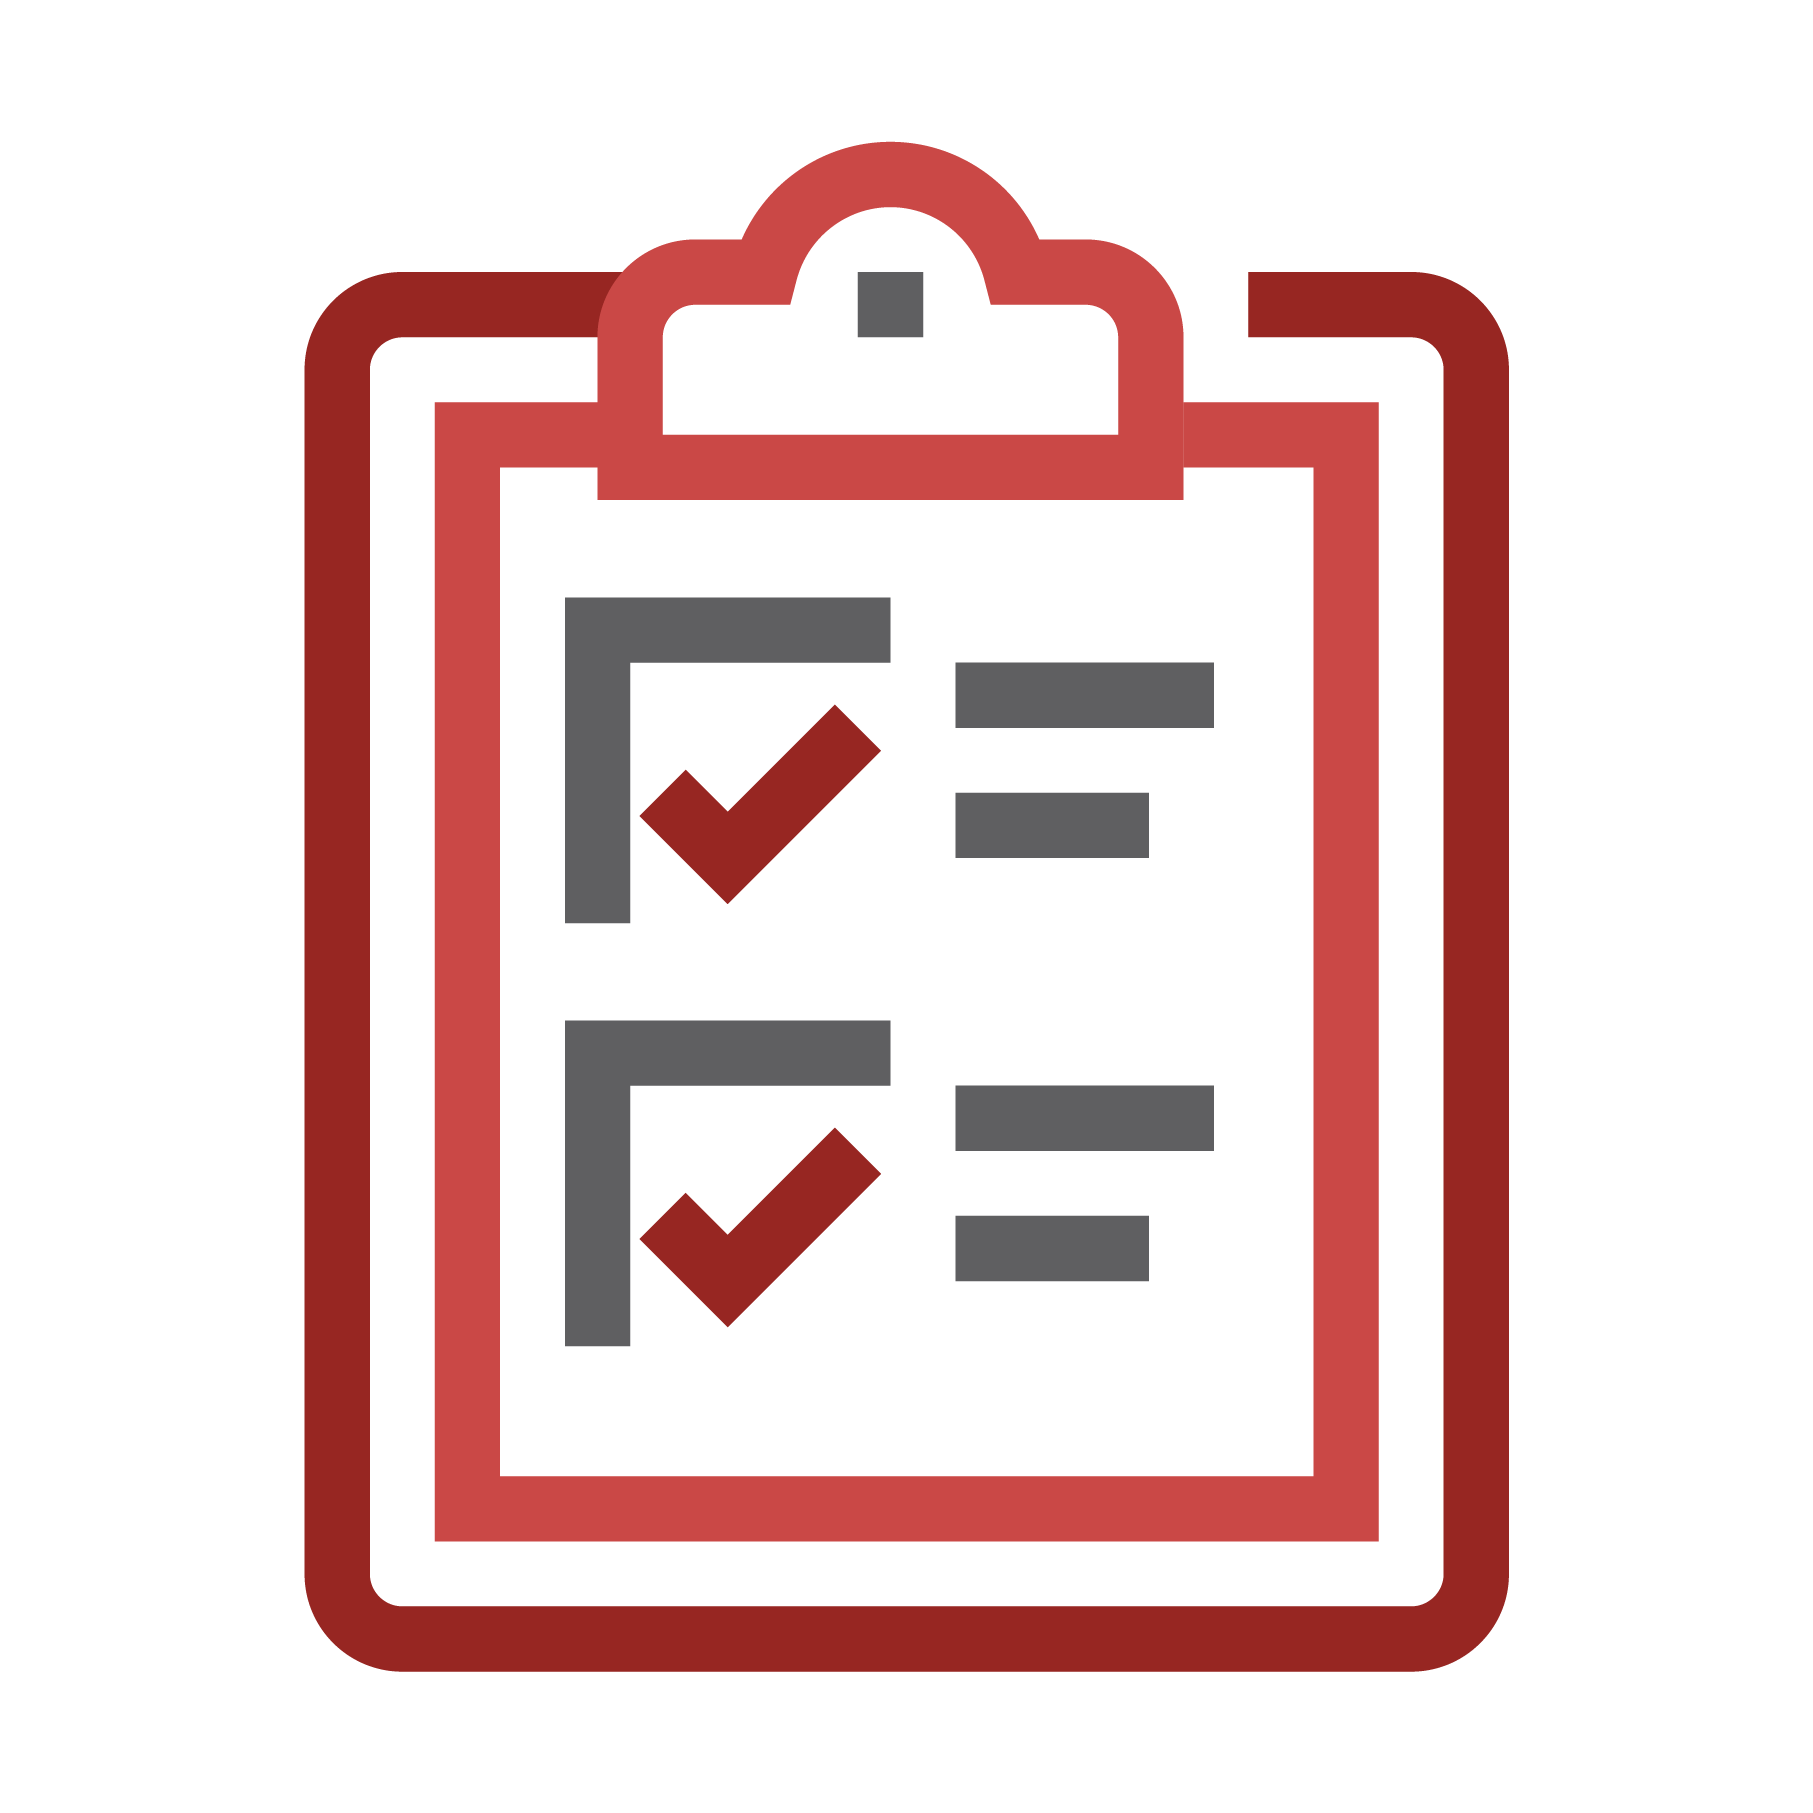 Checklist-icon-color-01